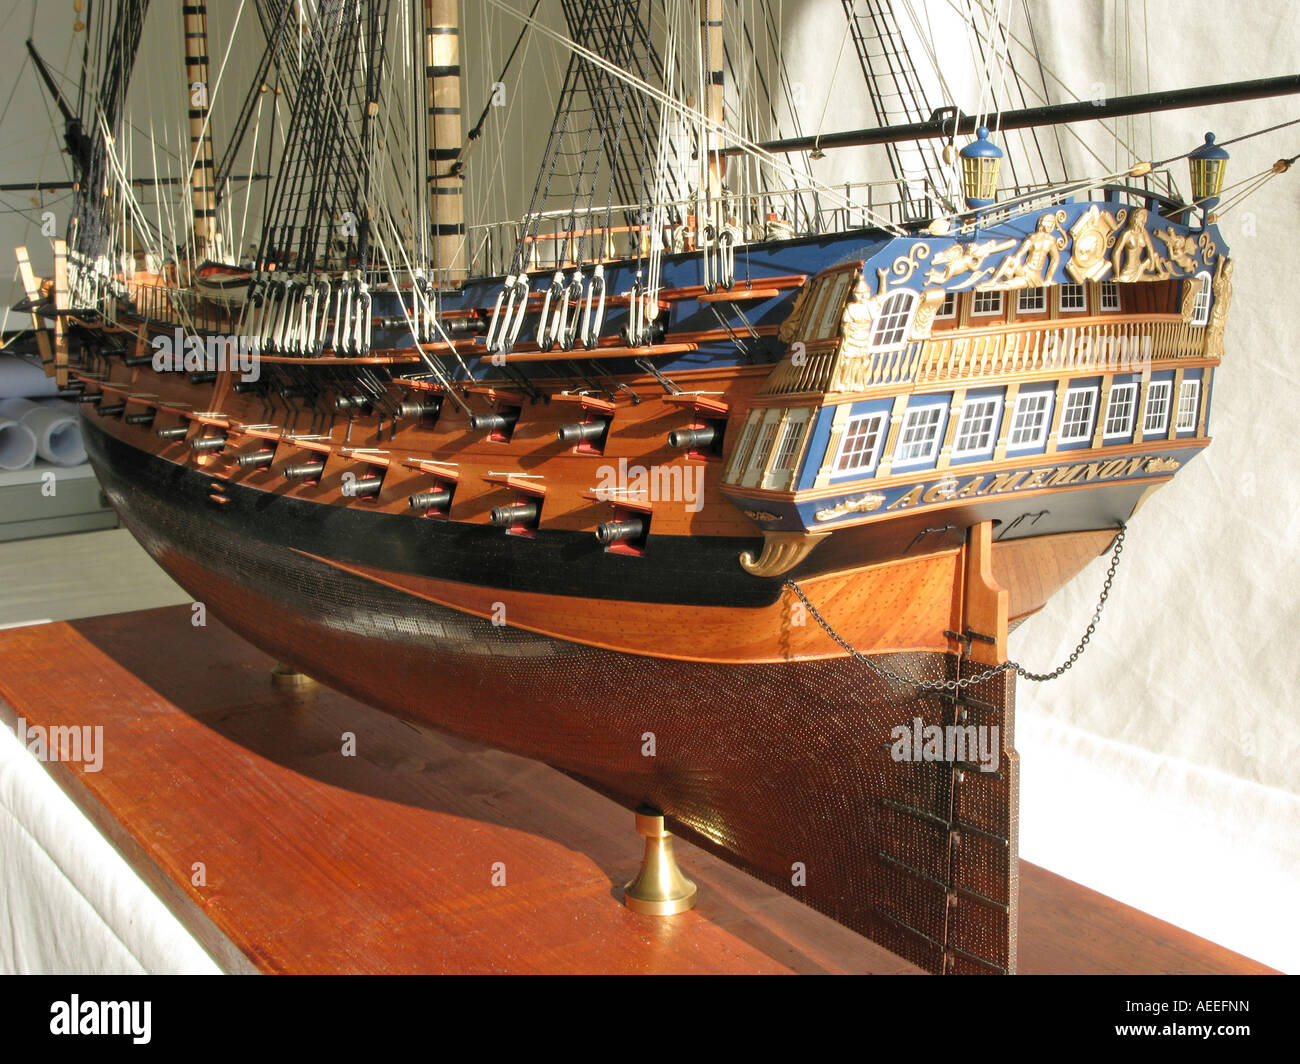 agamemnon-64-gun-ship-of-1794-nelsons-fa